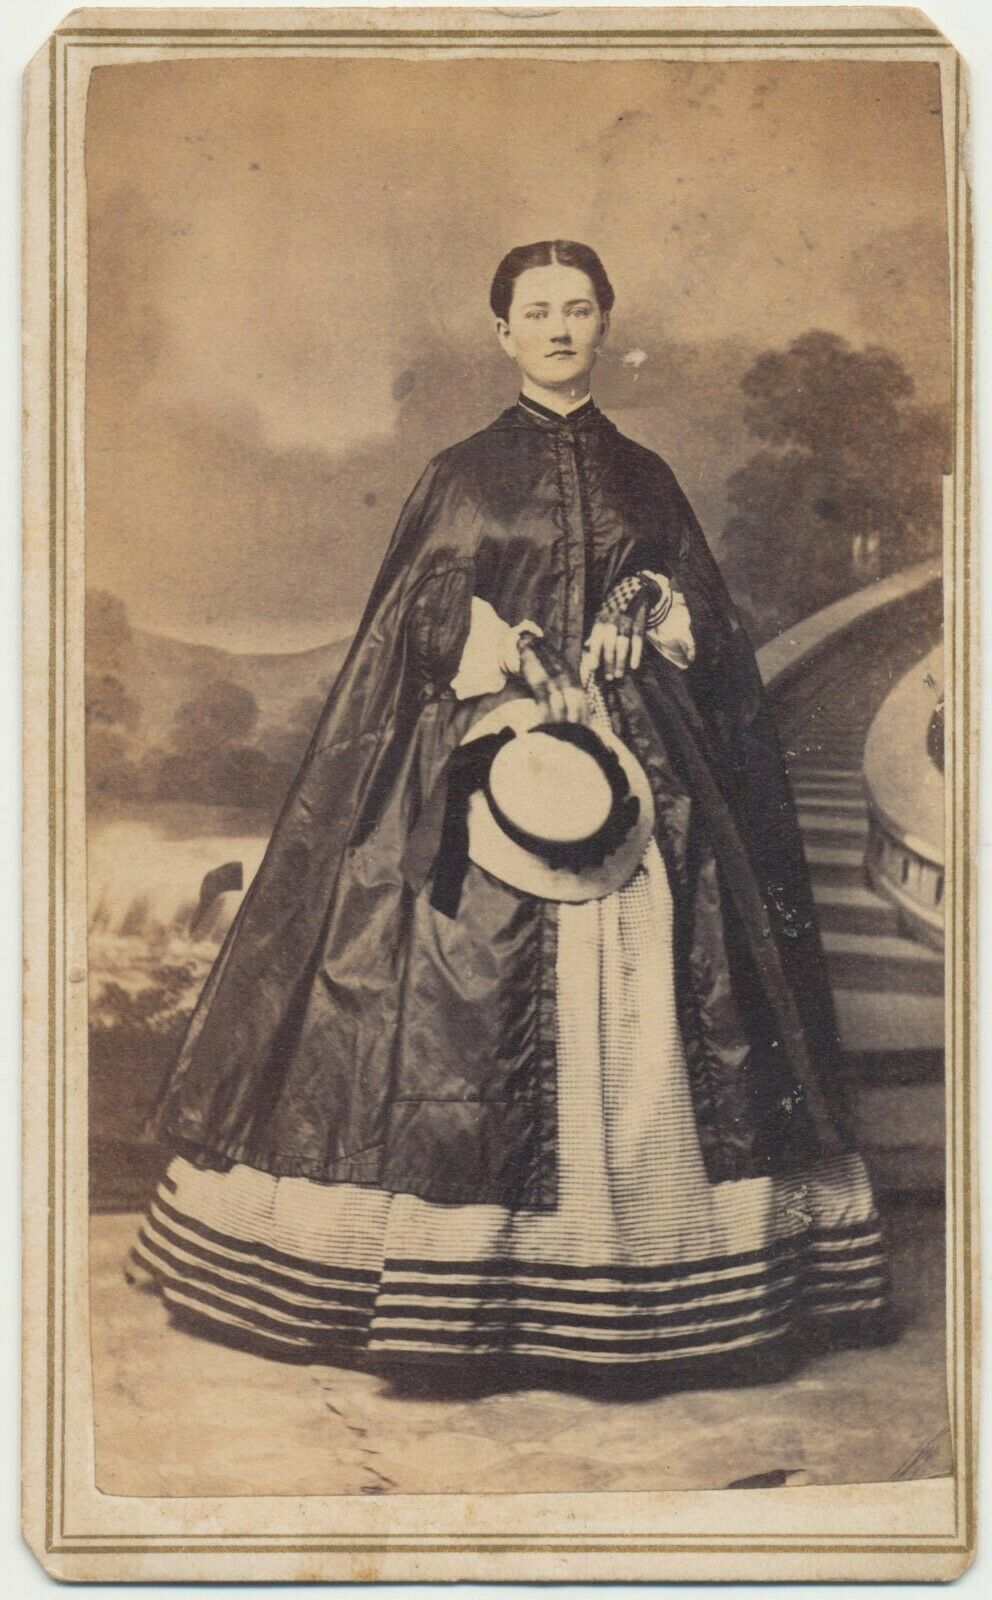 Halloween 2020 In Reding Pa 1860s CDV Full Standing Lady w Hat Magnificent Dress Photo by